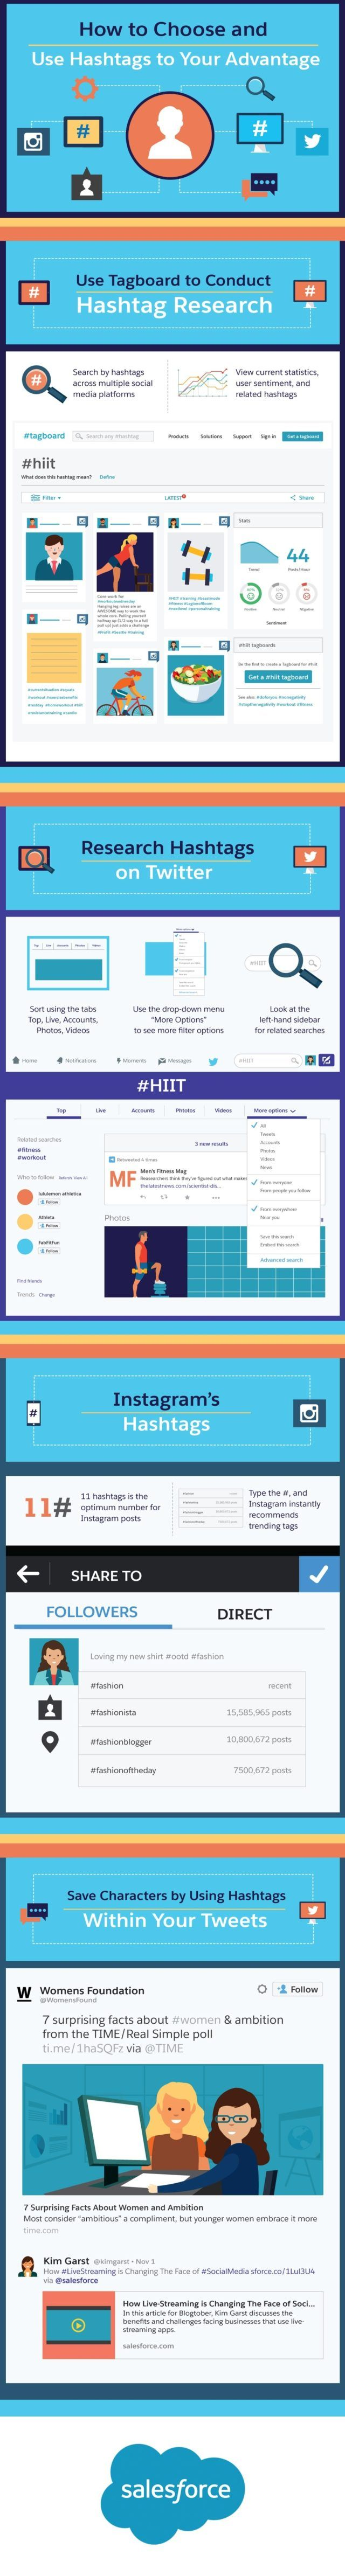 how-to-research-hashtags